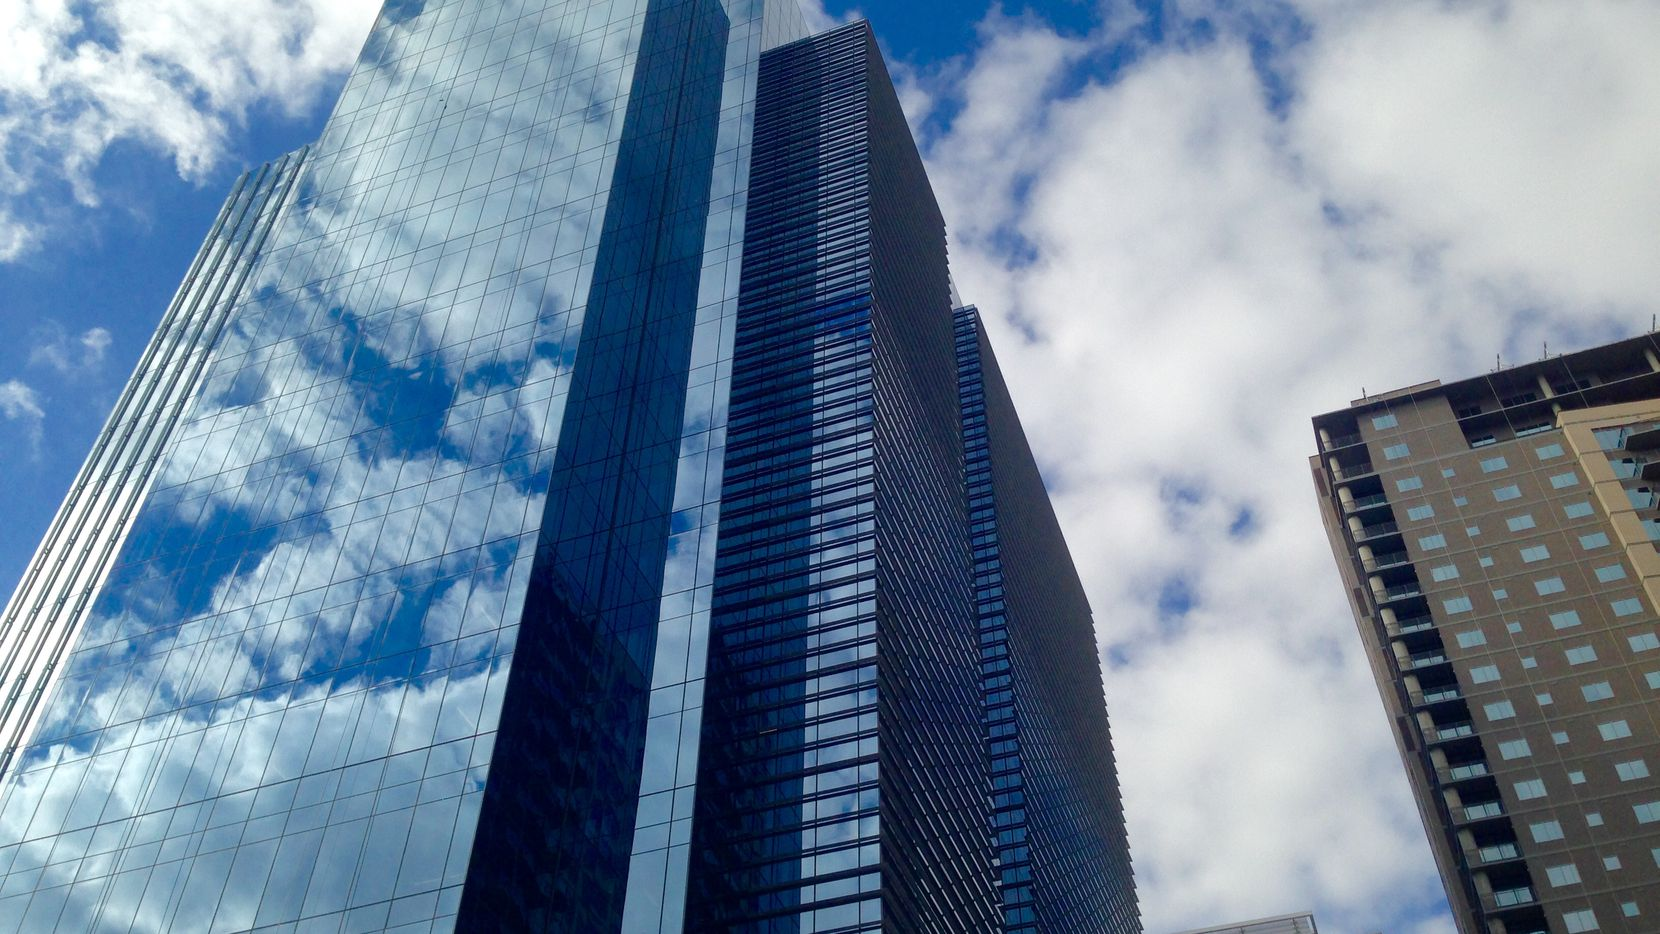 Koch Industries, IDI Logistics and Roscoe Property Management are moving their offices to the Union Dallas development.